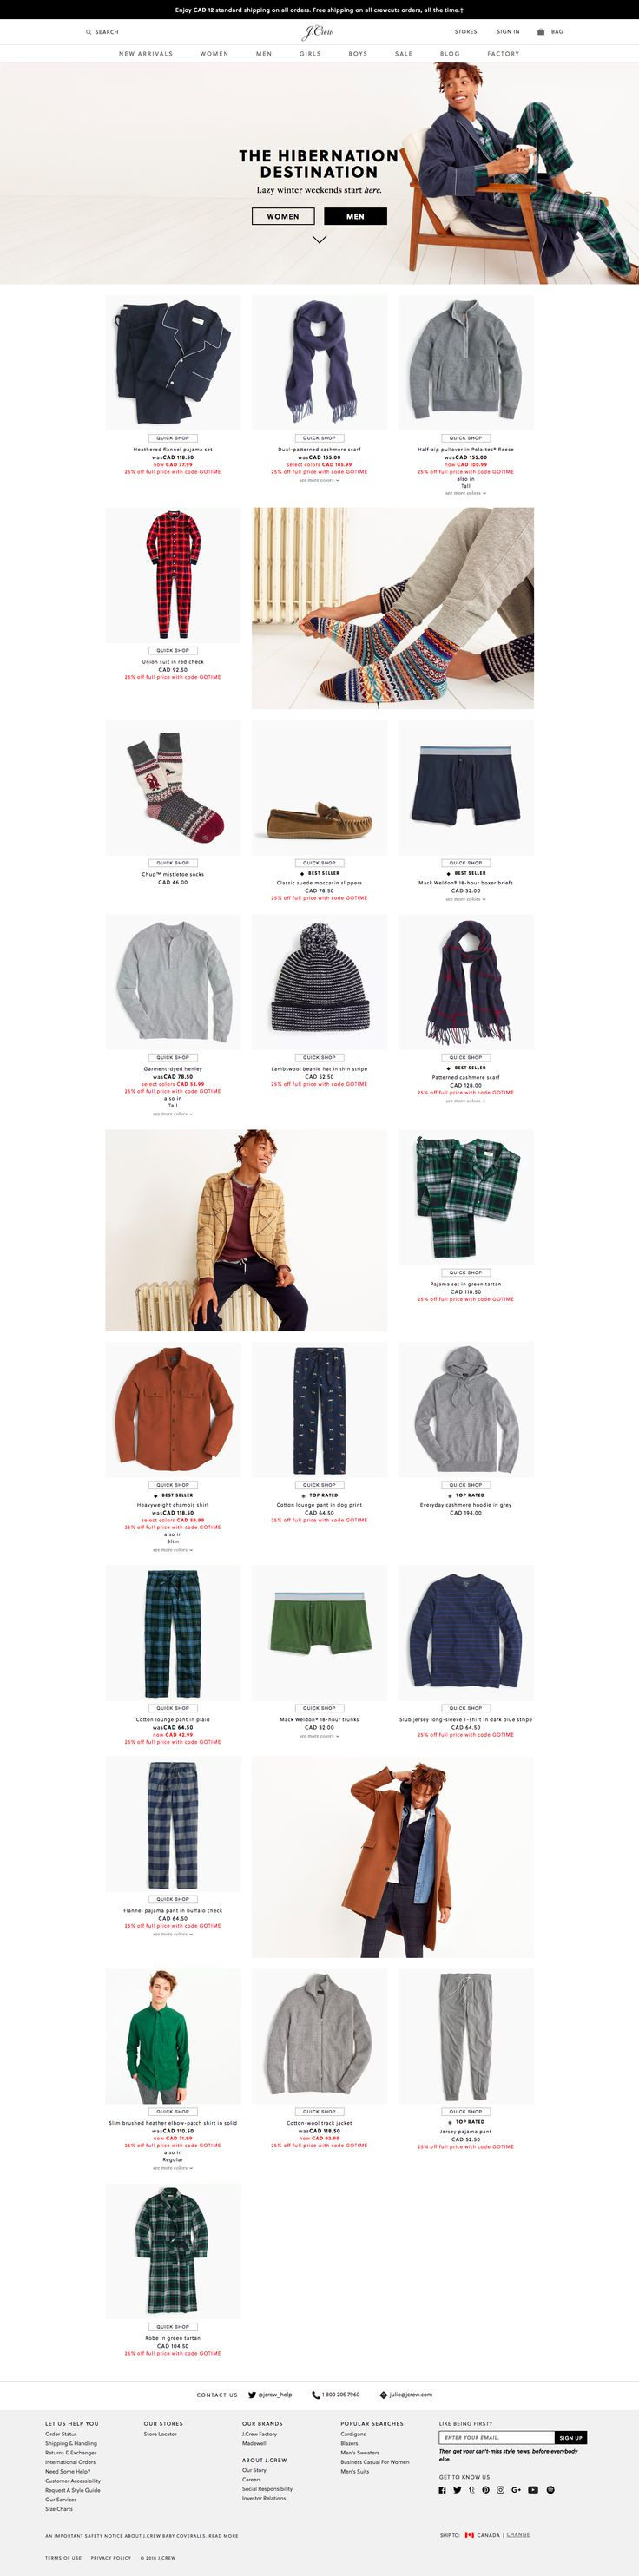 J. Crew banner above assortment with CTA